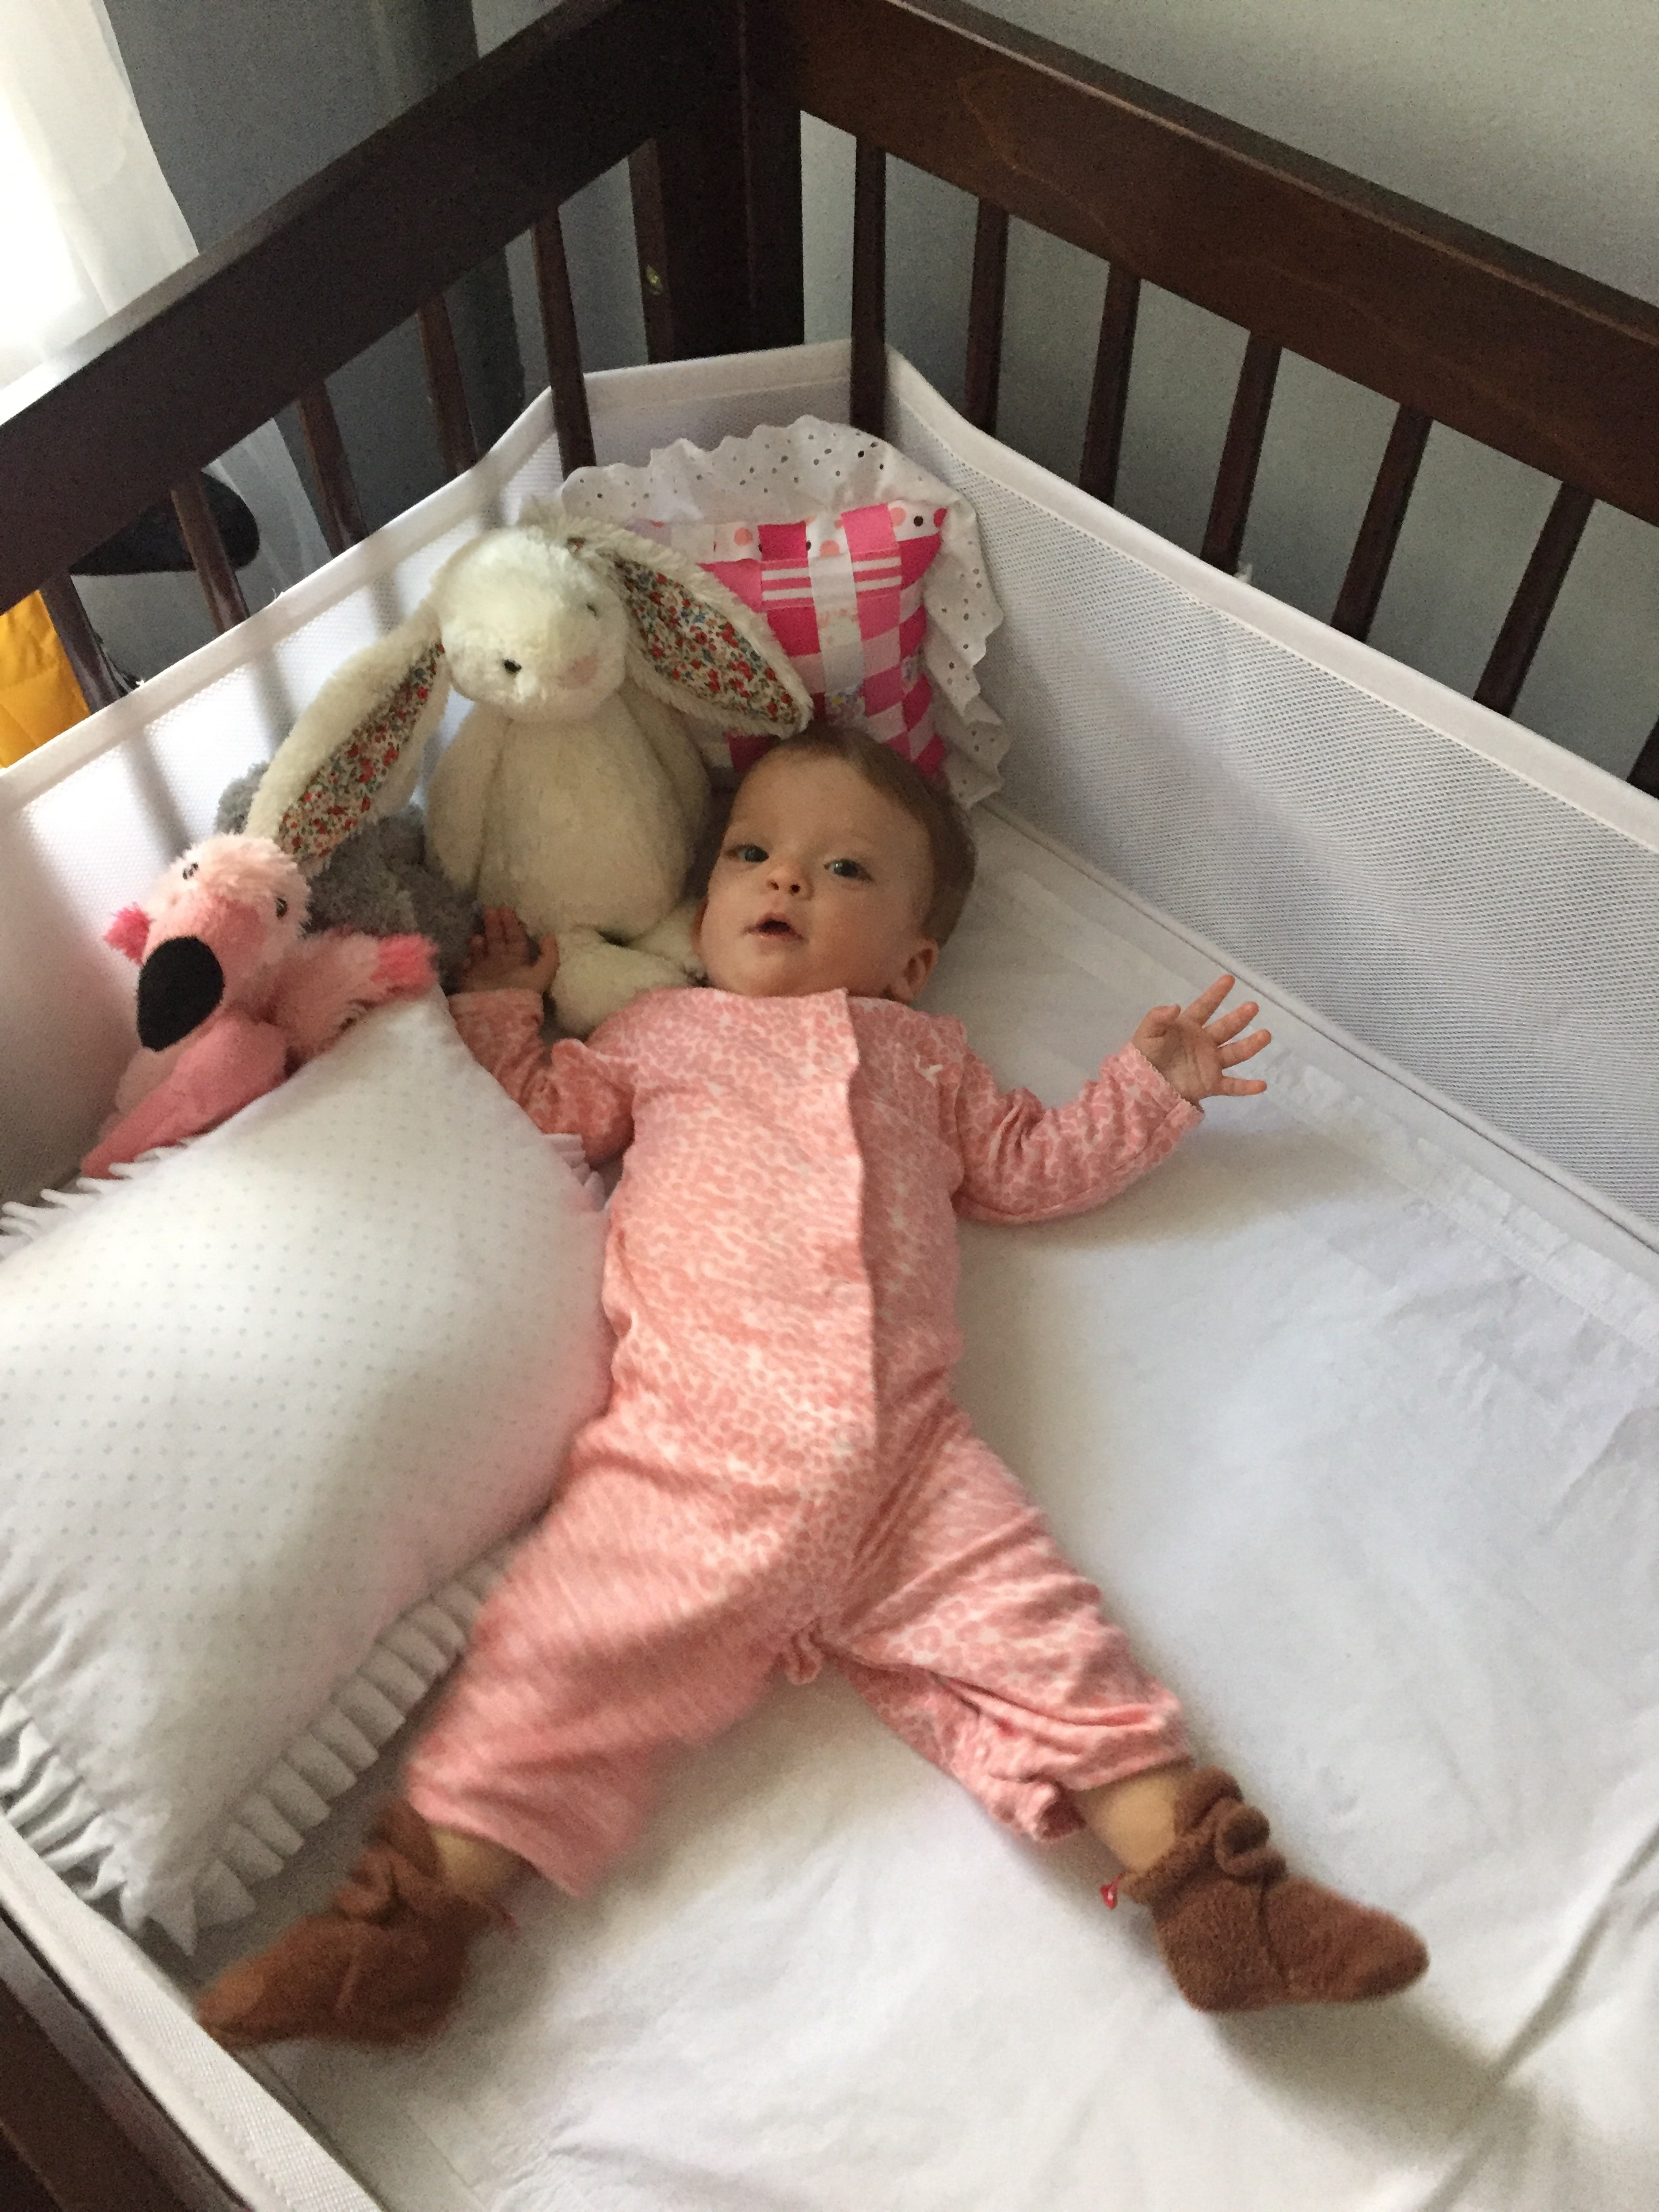 Lucie scooched to the other end of her crib to play with her throw pillows and stuffed animals. (Felix the Falmingo, Eleanor the Elephant and Boonches Bonita the Bunny.)